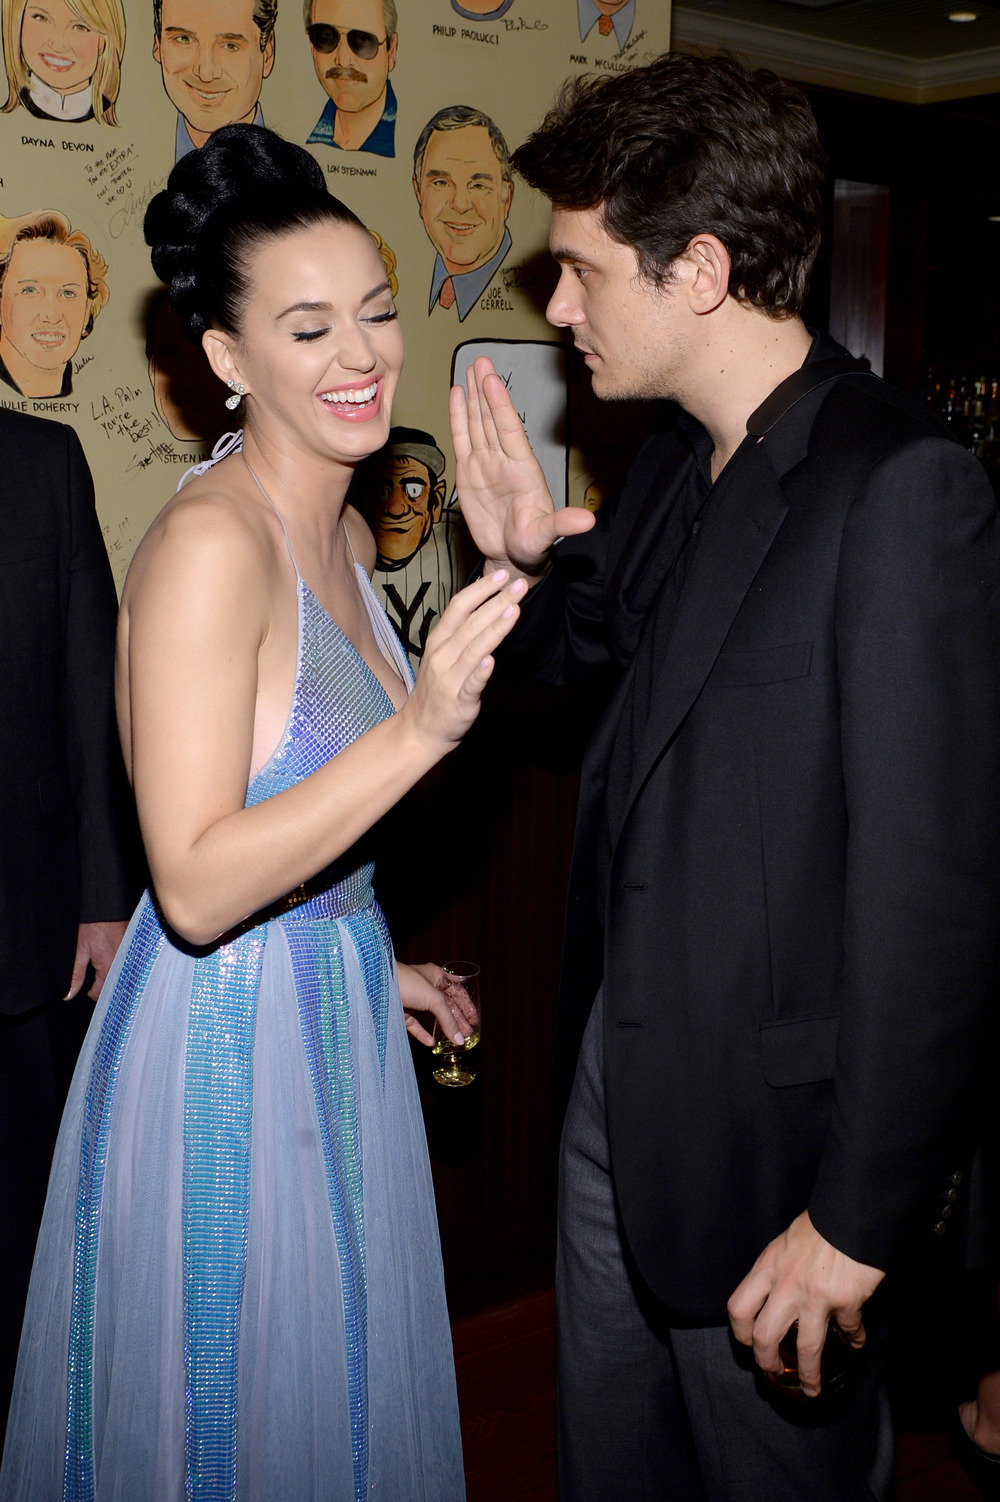 The Real Reason Behind Katy Perry and John Mayer's Split Revealed!